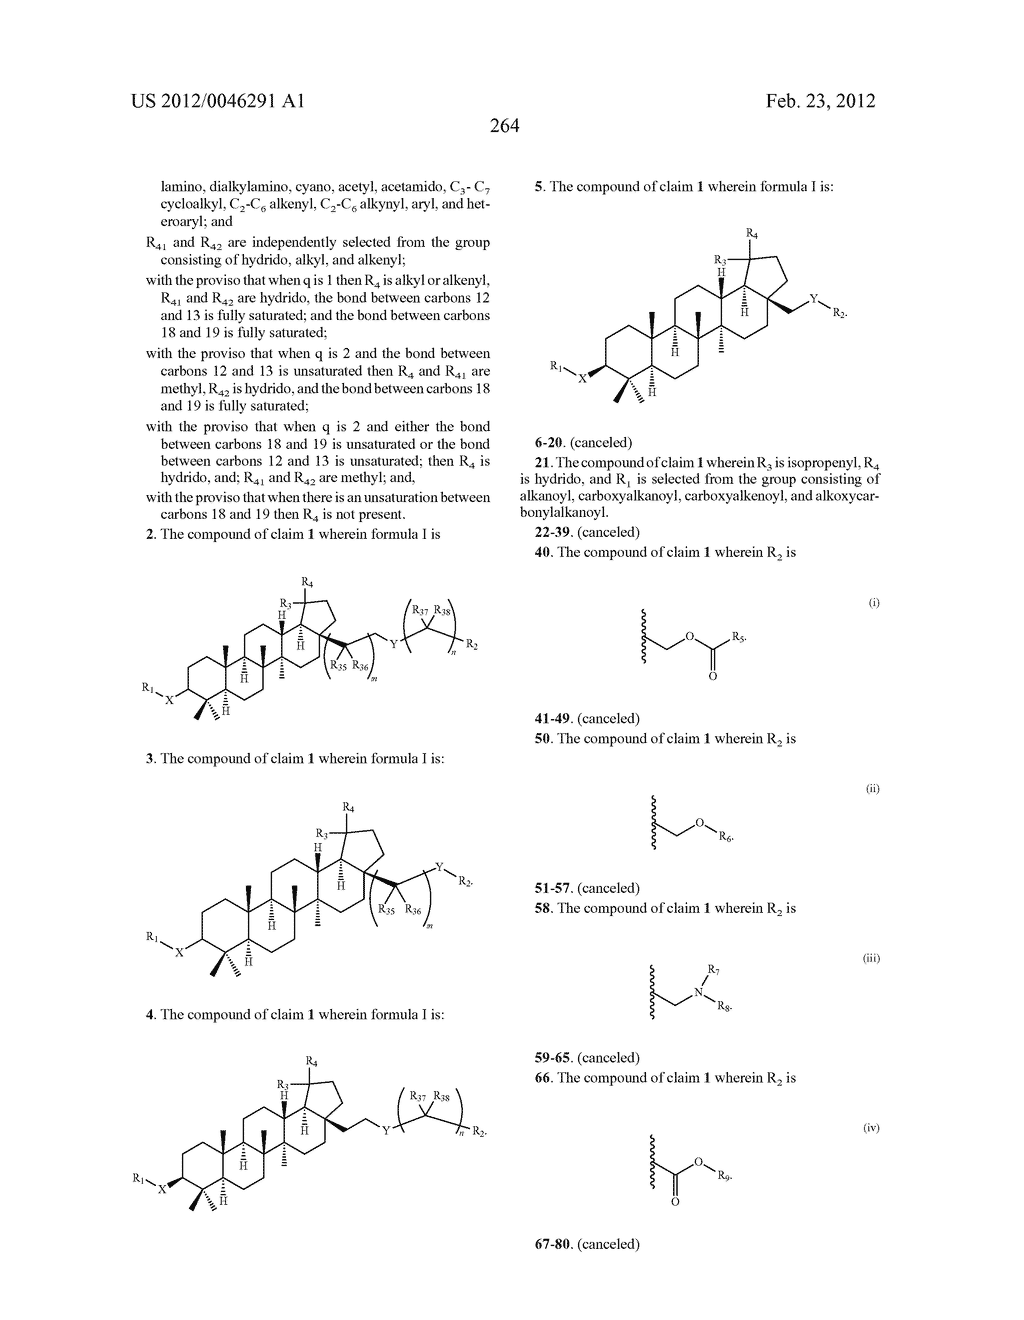 Extended Triterpene Derivatives - diagram, schematic, and image 264